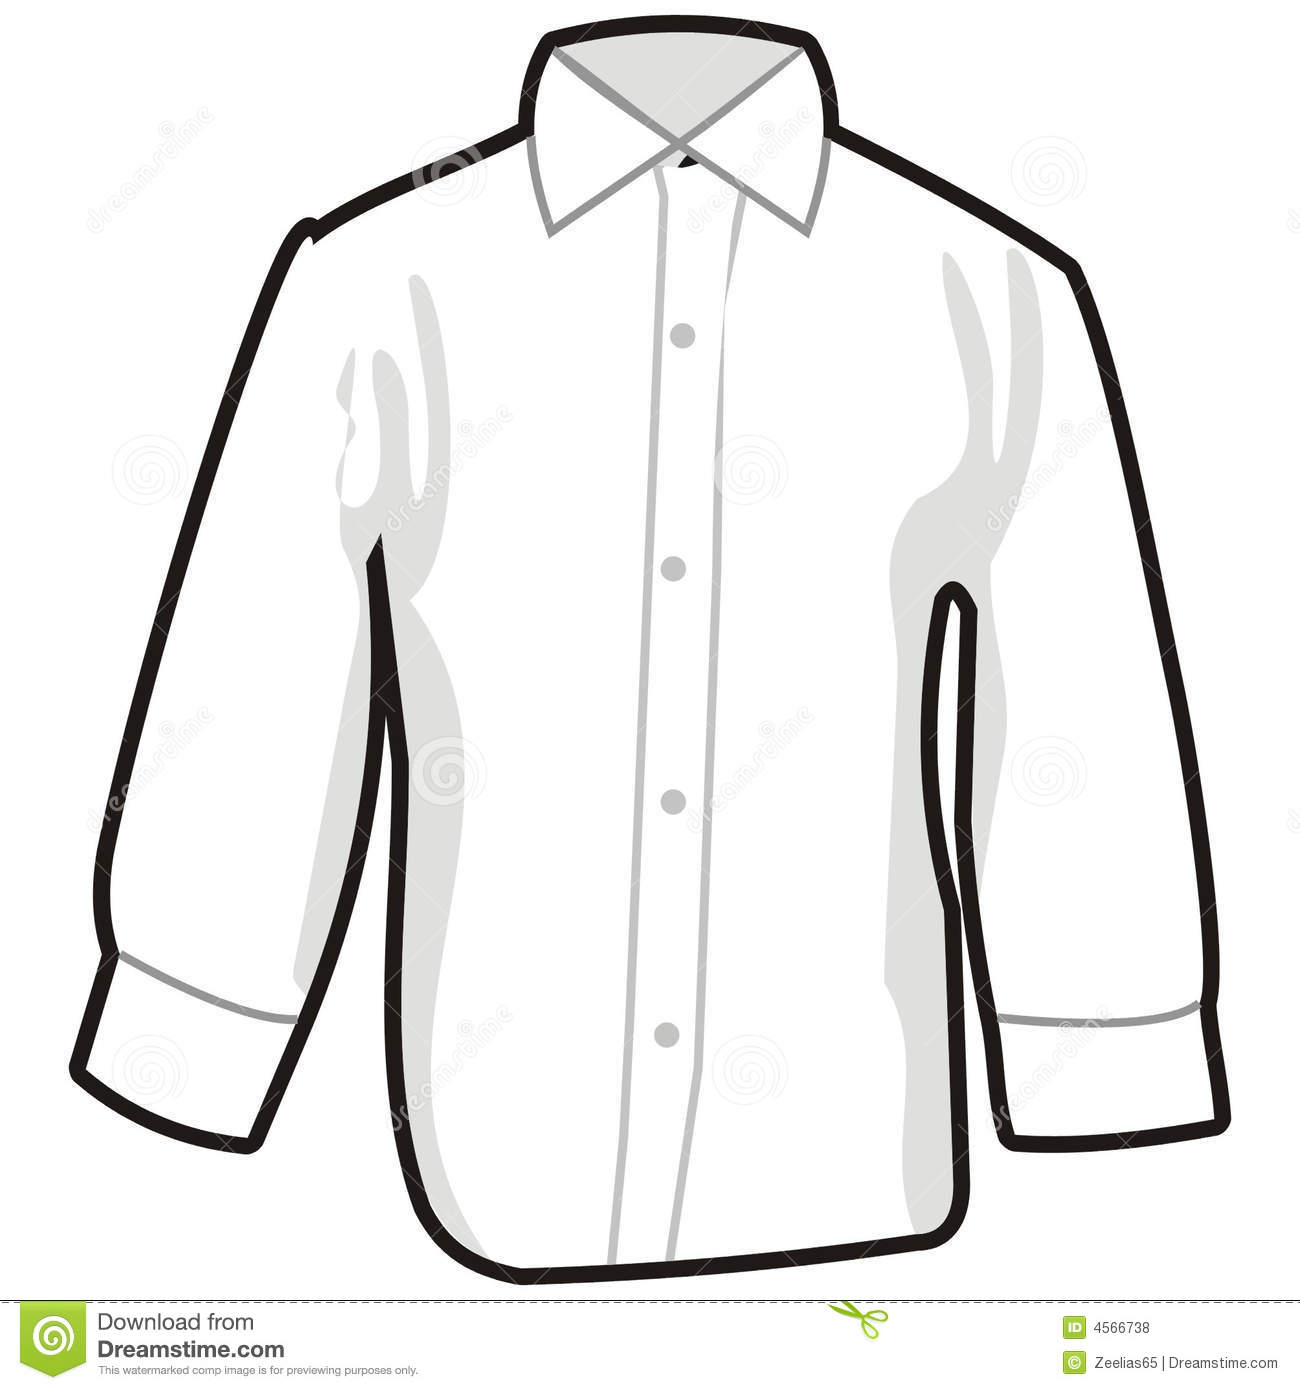 Shirt Royalty Free Stock Photos